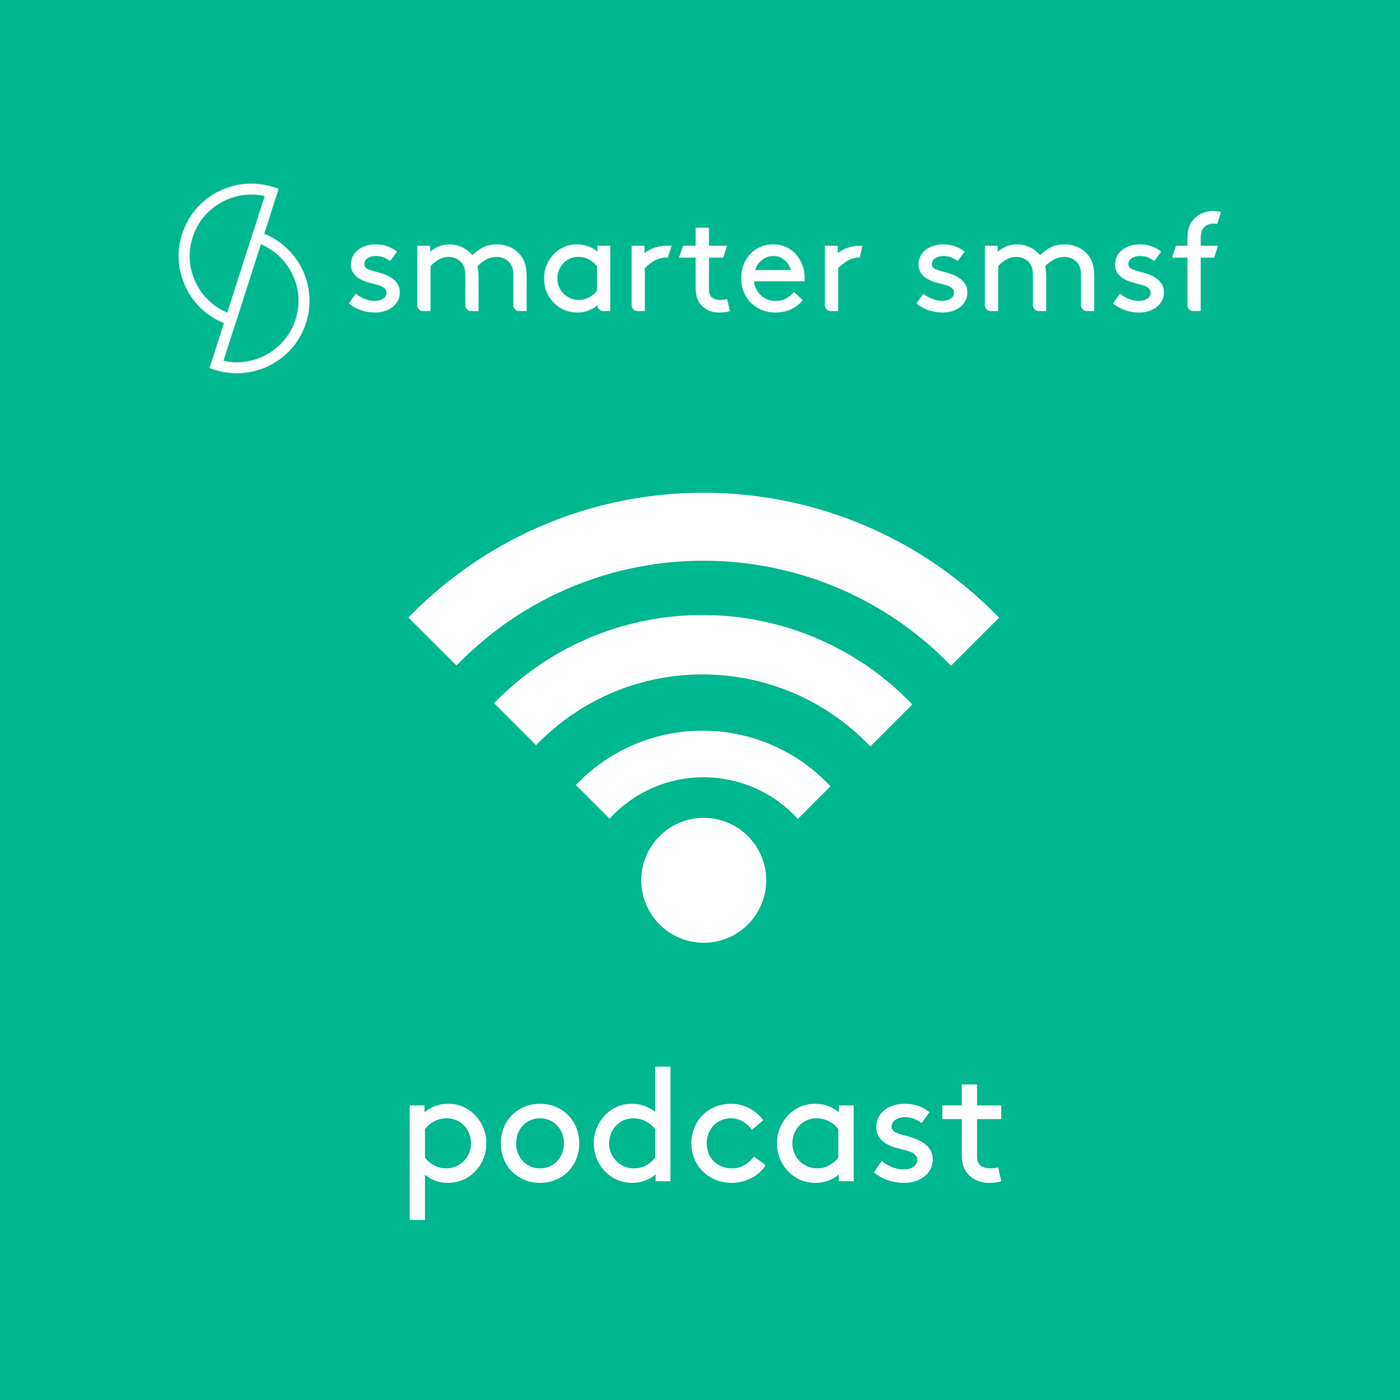 Episode 32 - My takeaways from the SMSF Association National Conference 2018